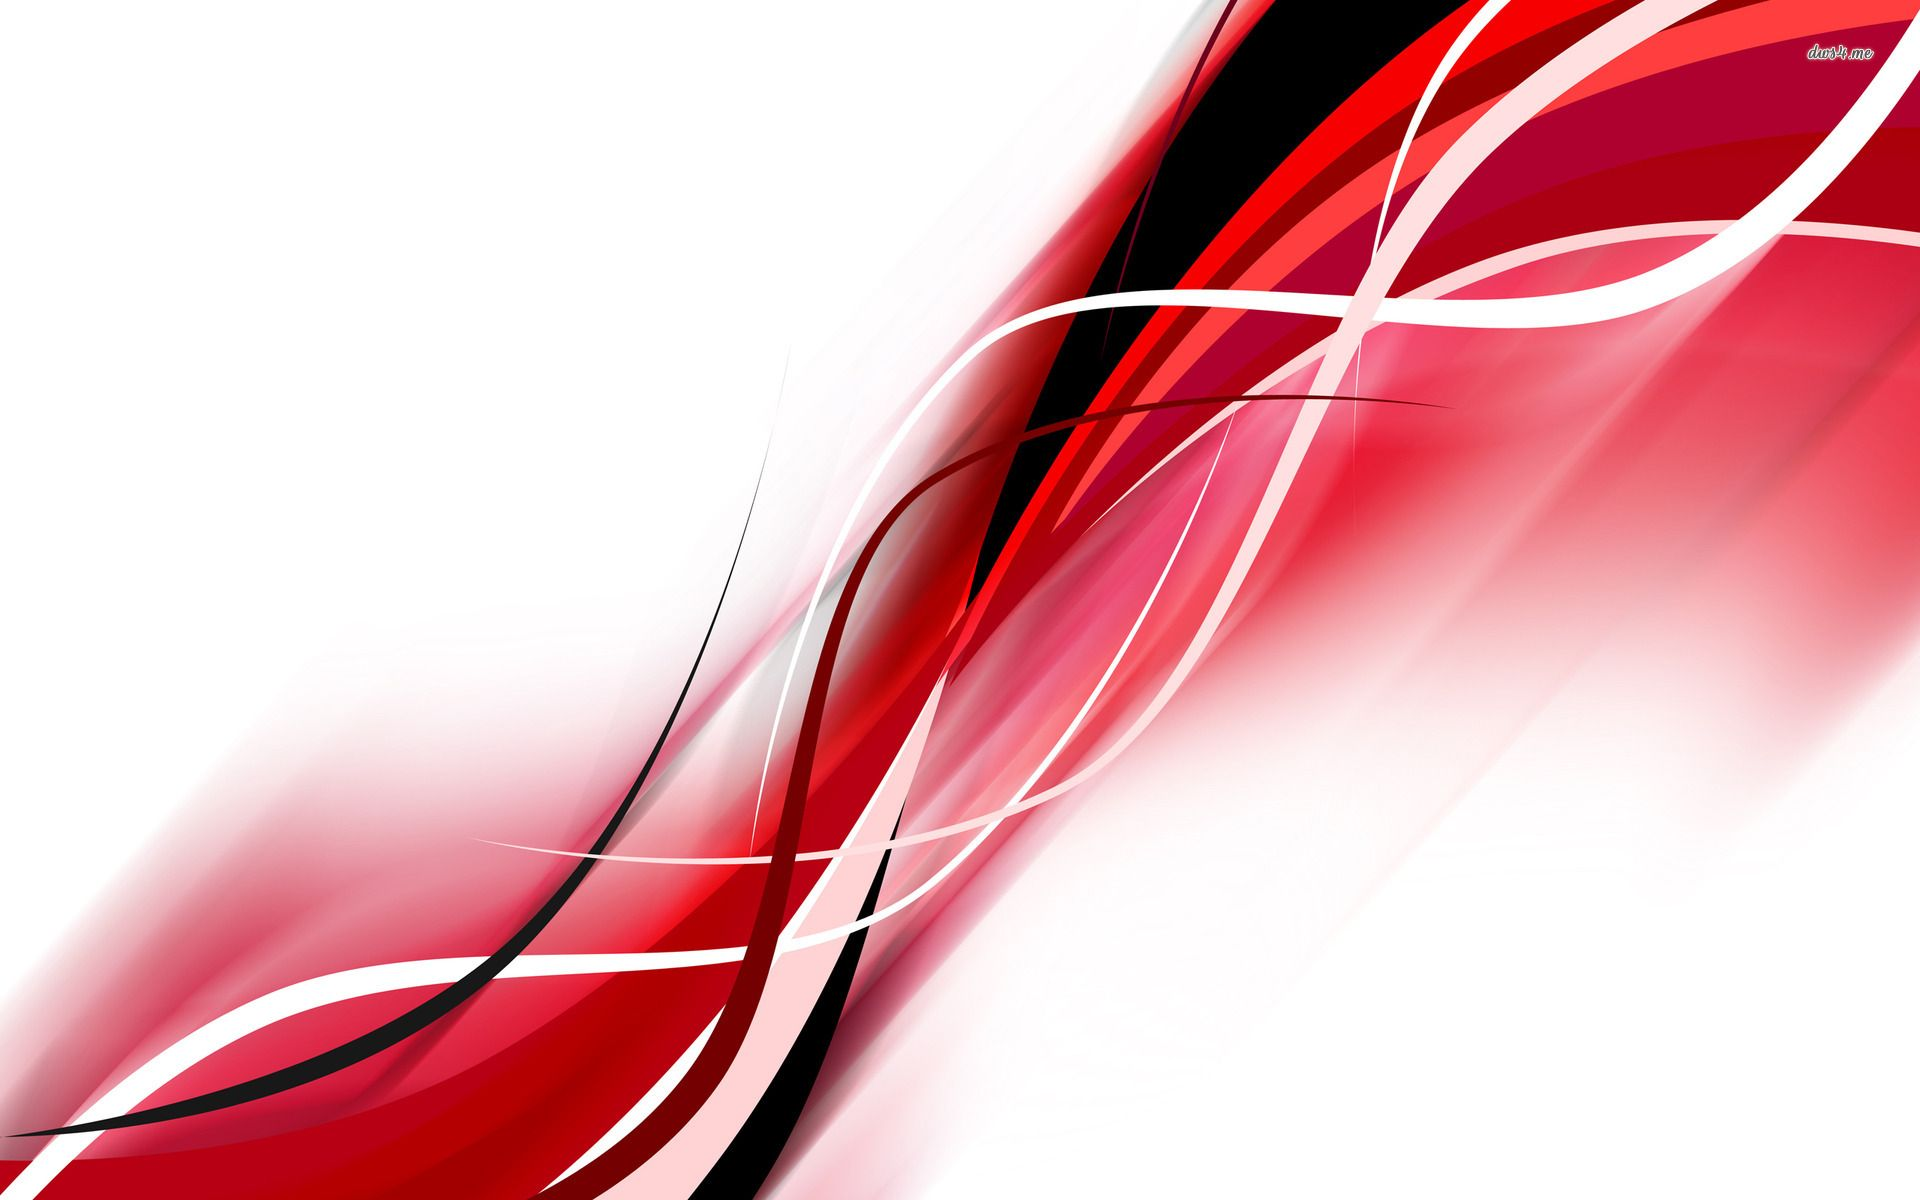 Black And White And Red Abstract Background Background 1 Hd